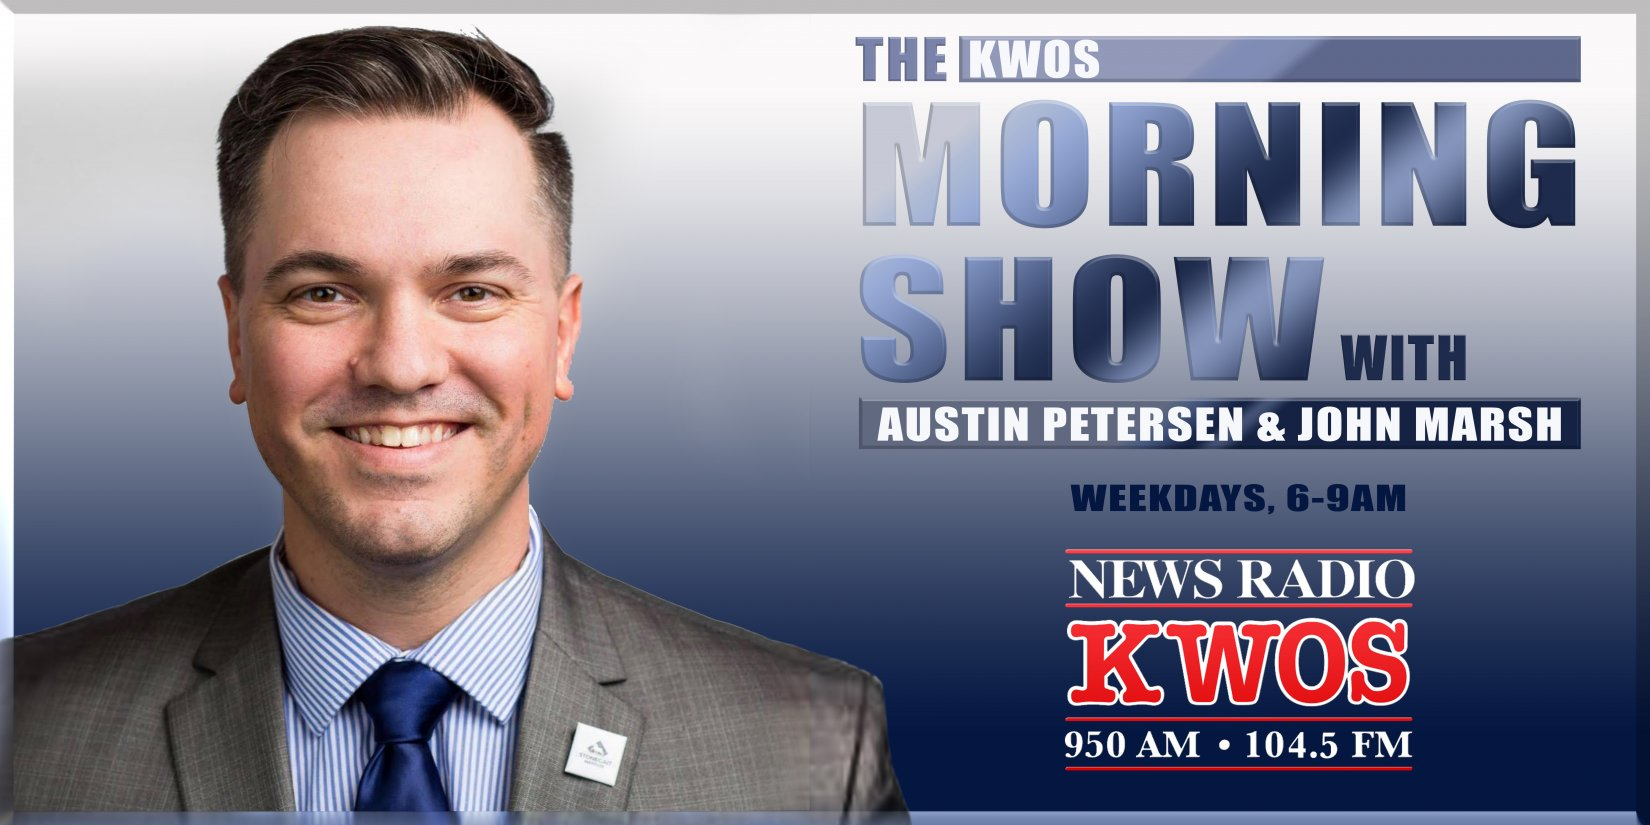 The KWOS Morning Show with Austin Petersen and John Marsh – KWOS